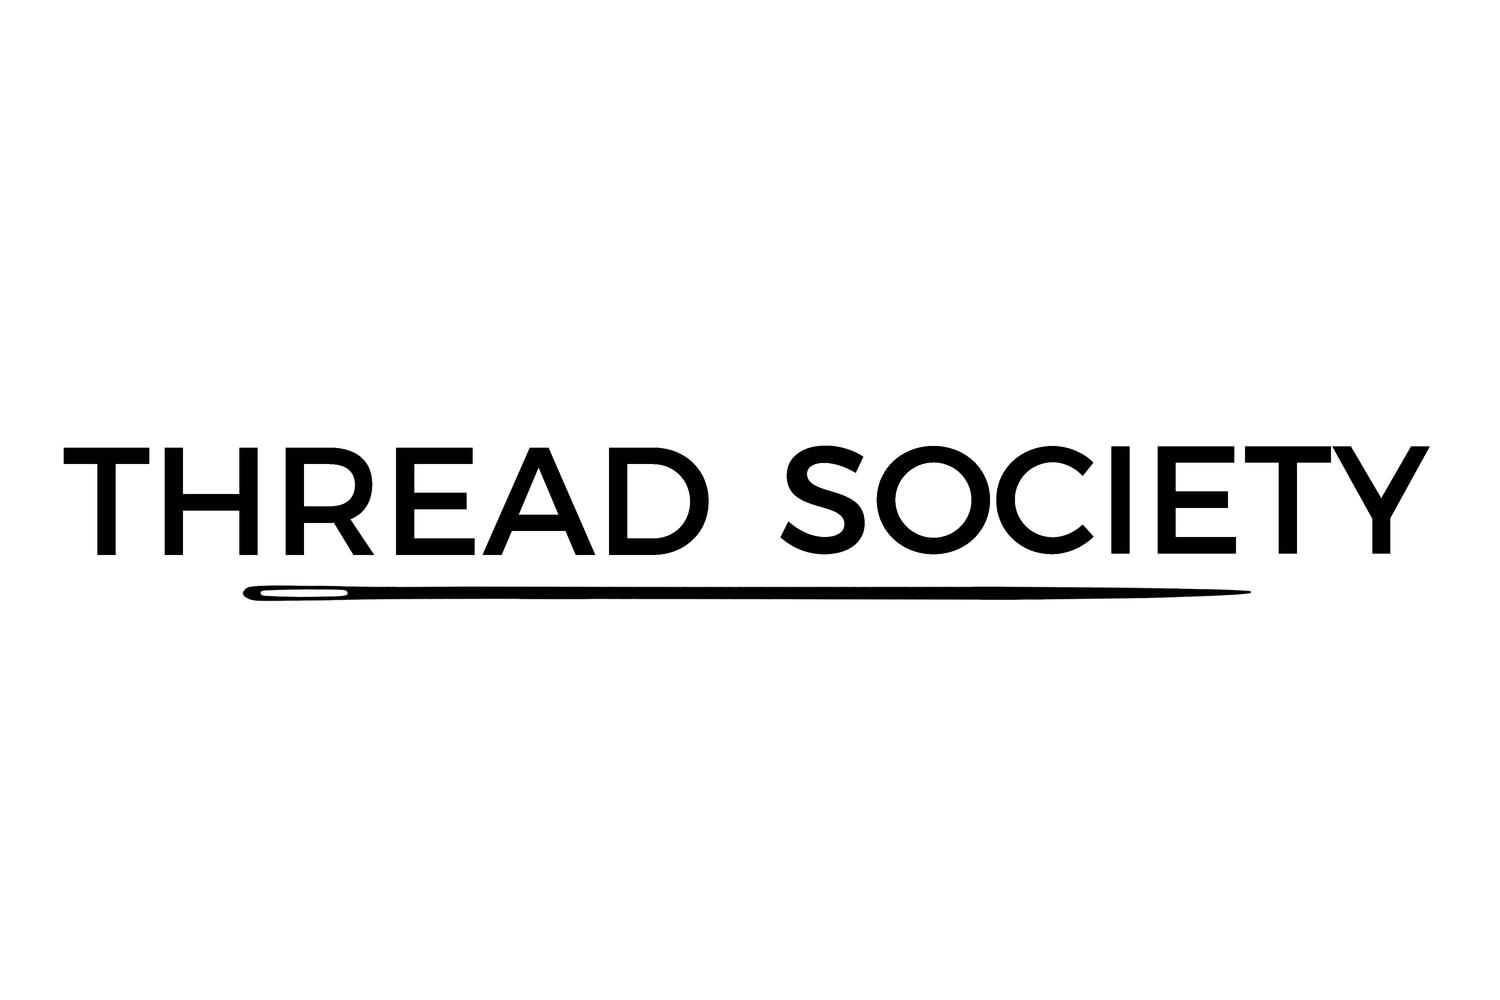 Thread Society